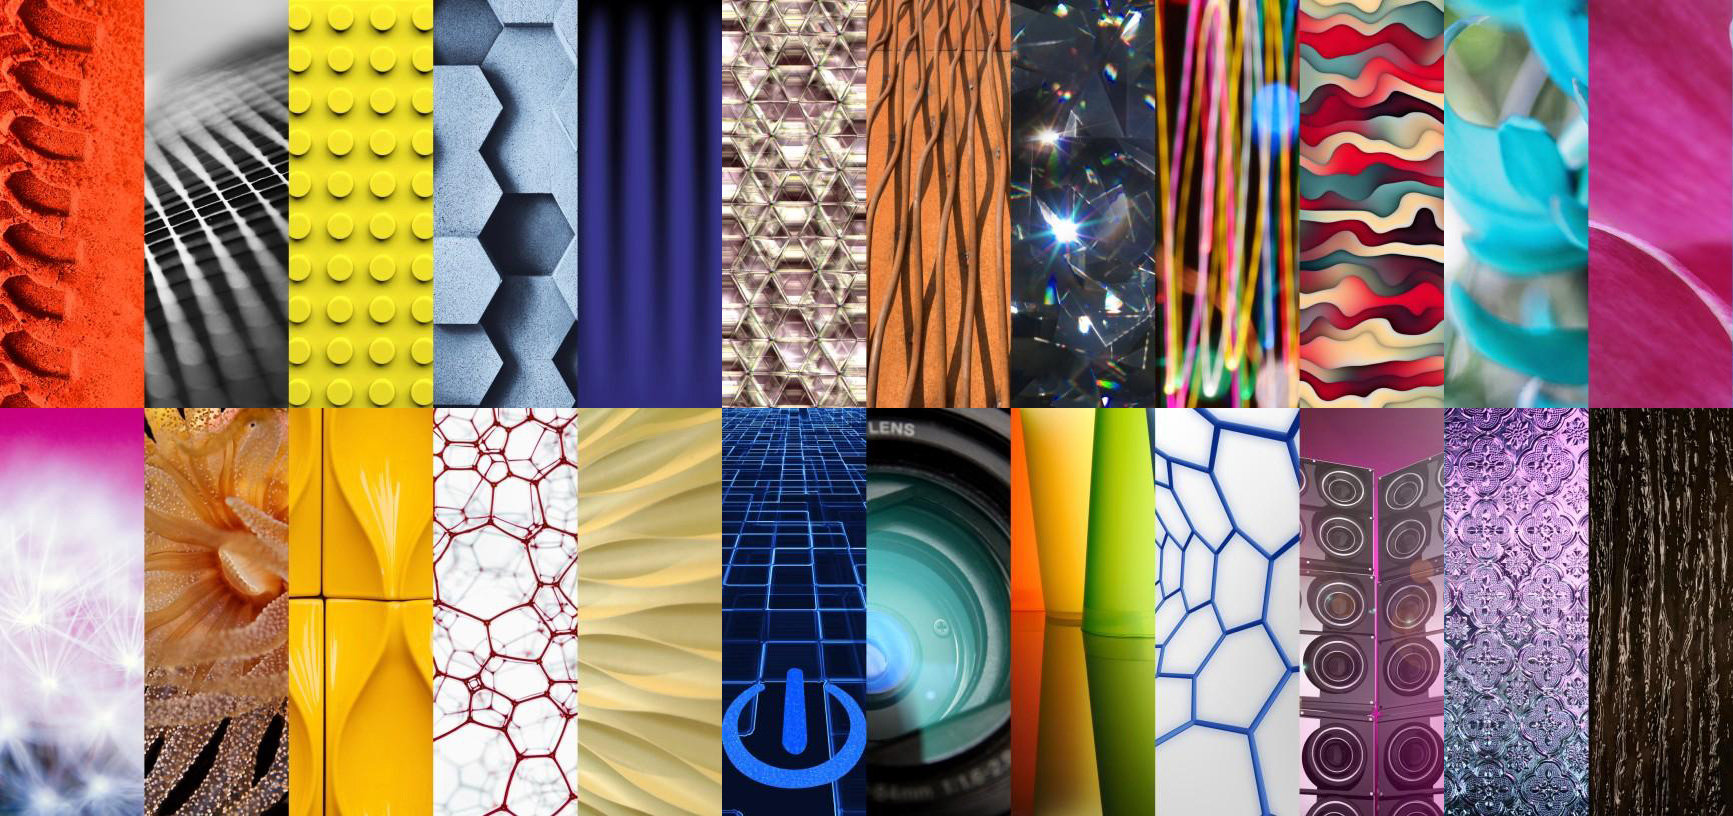 Fabric Trends 2020.Ispo Textrends Textile Trends Fall Winter 2019 20 Fashion